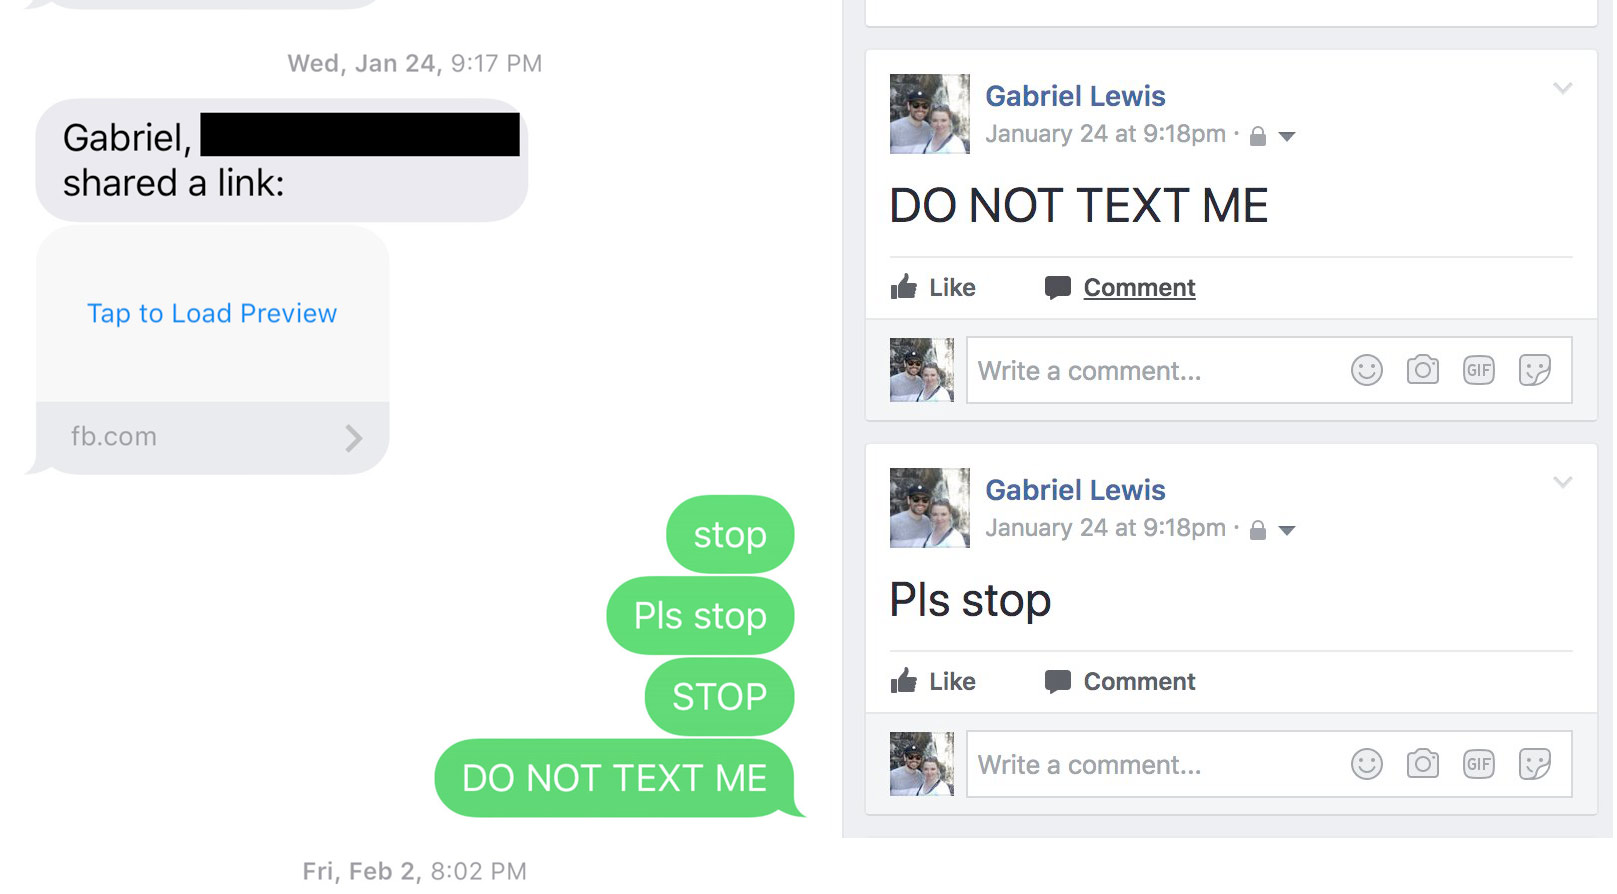 Do Not Text